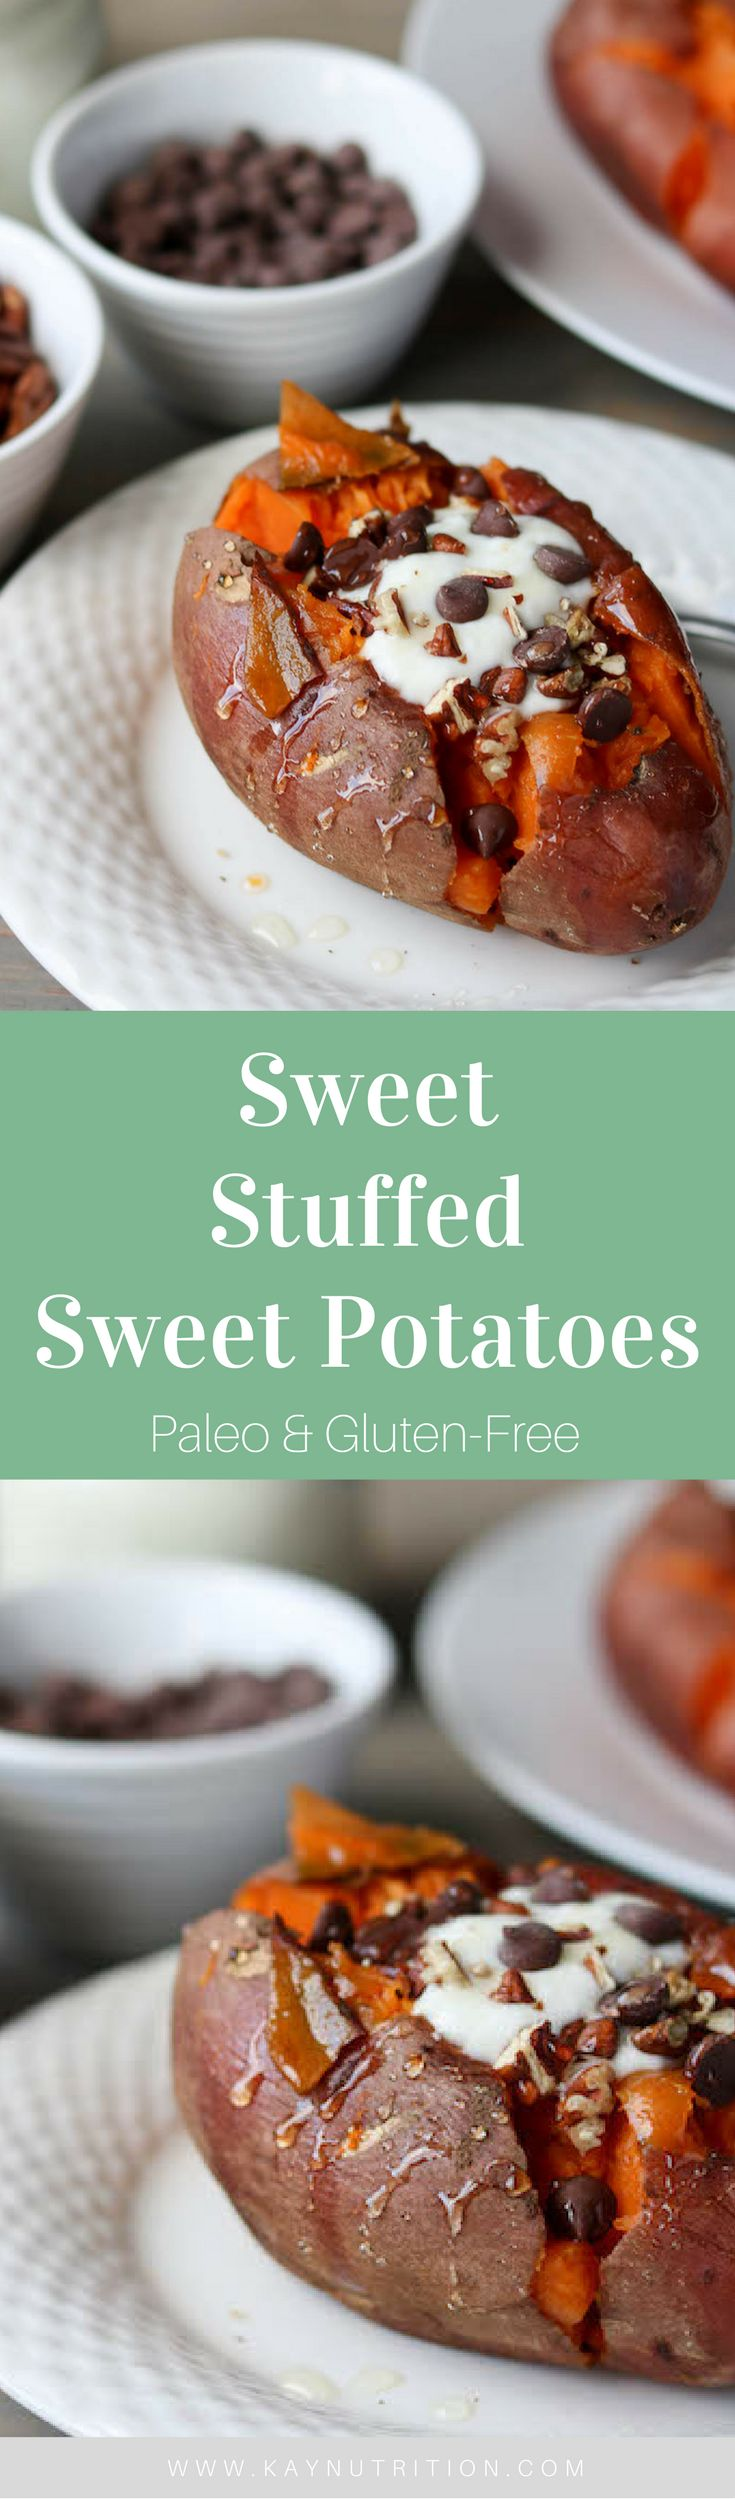 Who knew sweet potatoes could be a dessert? These Sweet Stuffed Sweet Potatoes are a tasty treat you can eat for dessert, snack and breakfast alike.